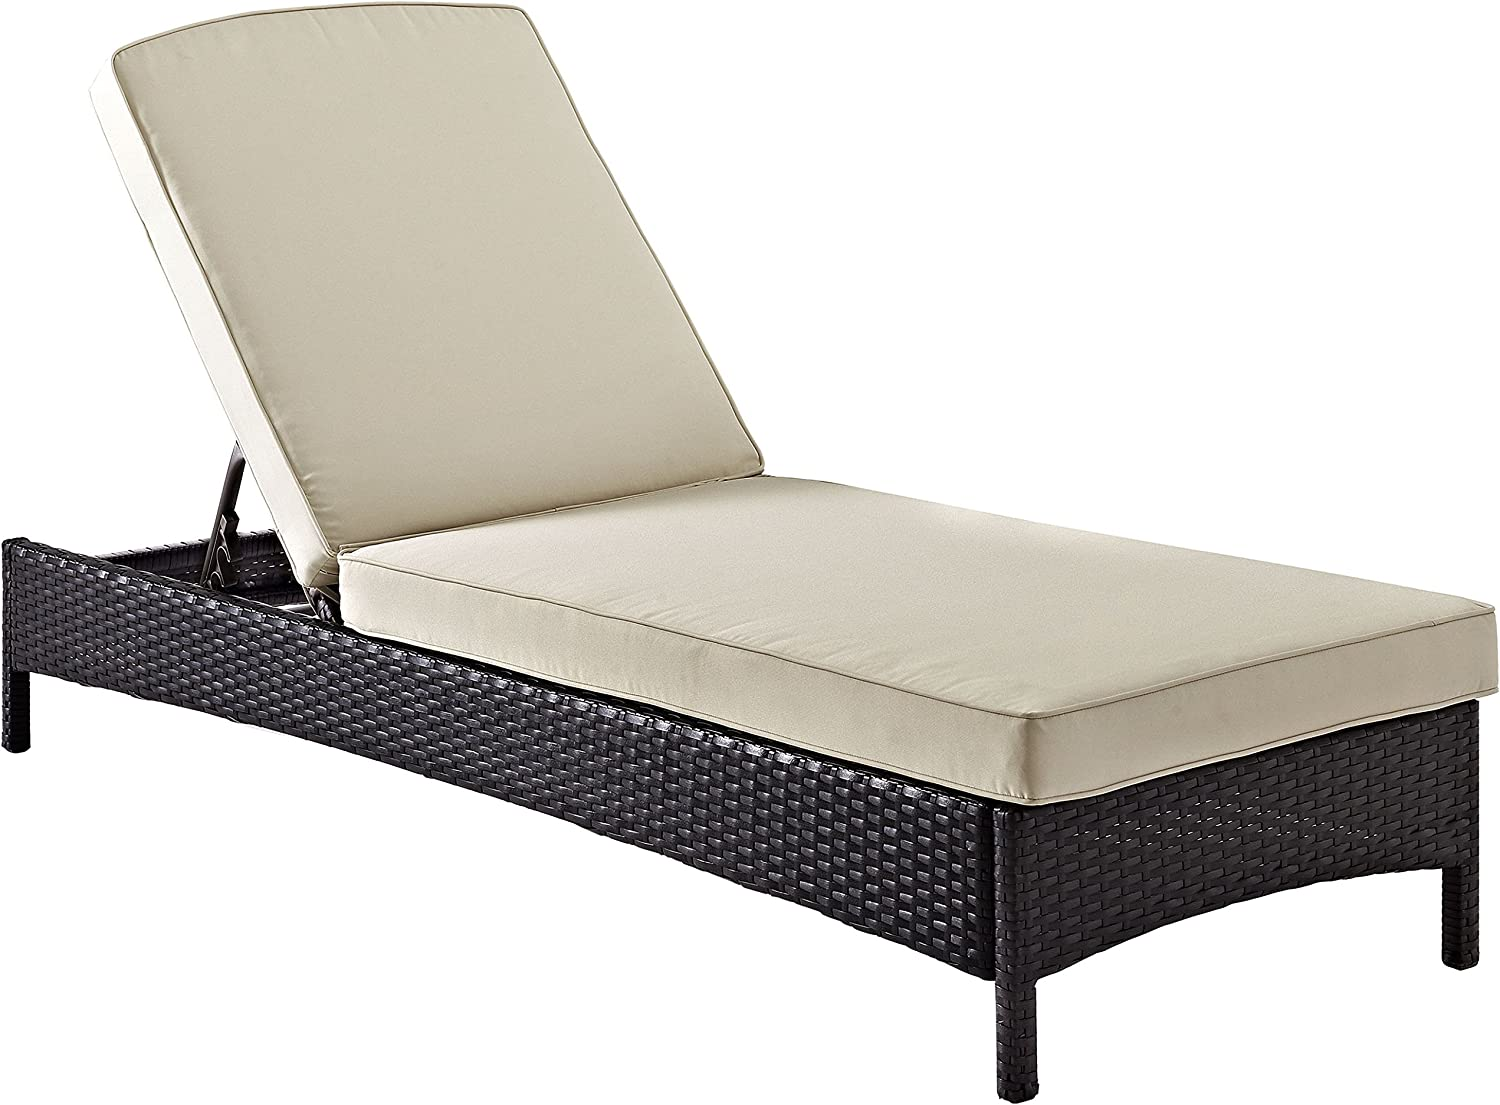 Crosley Furniture KO70093BR-SA Palm Harbor Outdoor Wicker Chaise Lounge, Brown with Sand Cushions